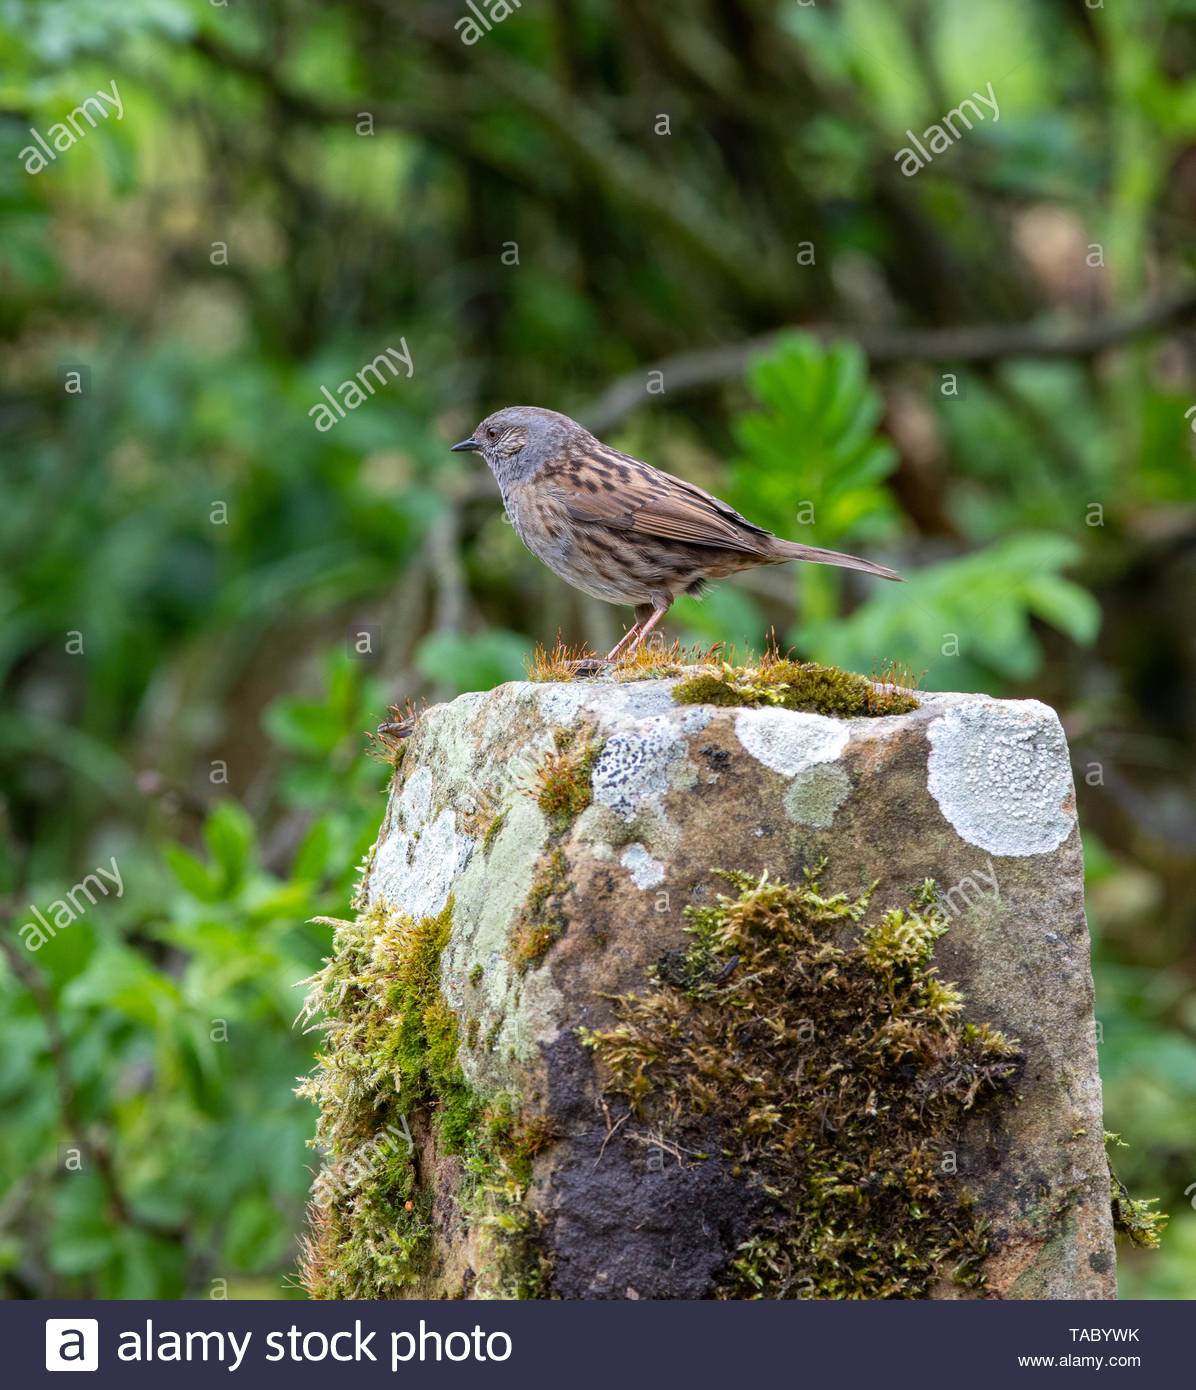 Dunnock (Prunella modularise) perched on moss covered sandstone - Stock Image